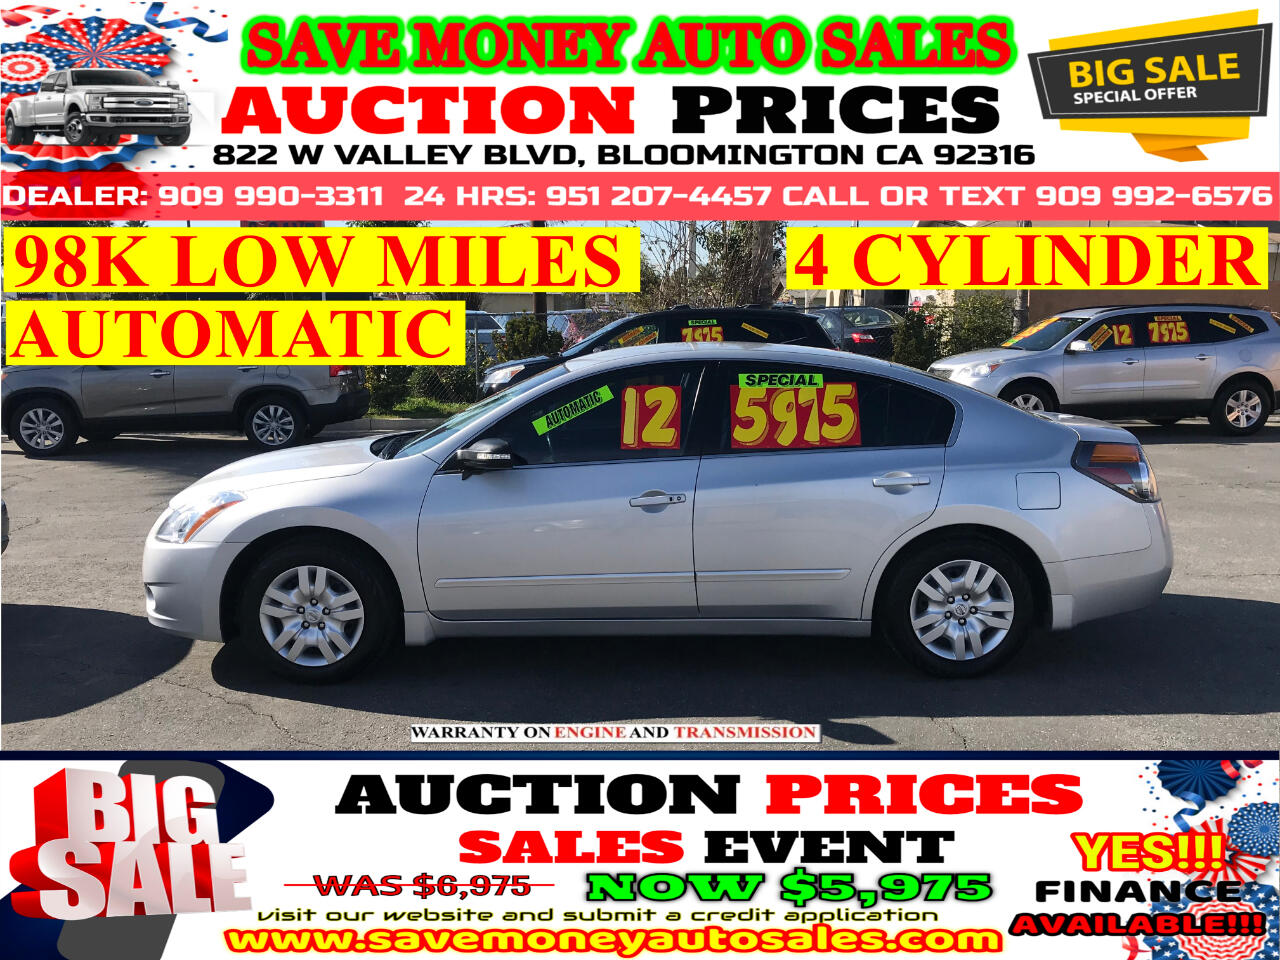 used 2012 nissan altima 2 5s 98k low miles automatic extra clean 4cyld for sale in bloomington ca 92316 save money auto sales save money auto sales